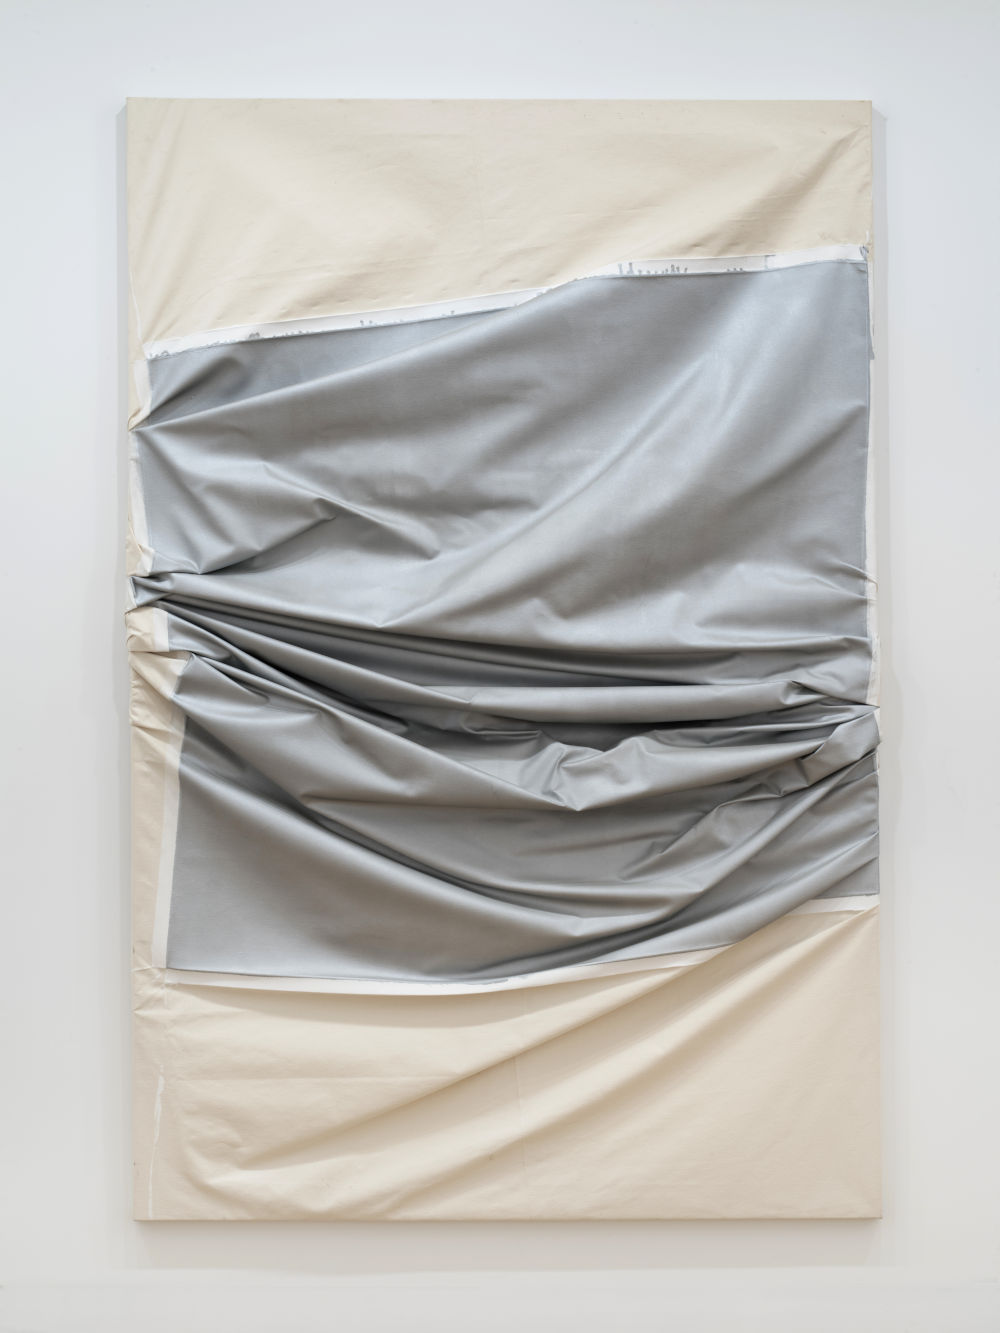 Steven Parrino, Death in America #3, 2003. Acrylic on canvas and gesso 107 x 72 inches 270 x 180 cm. Signed and titled Steven Parrino [Death in America] #3 (on the stretcher)